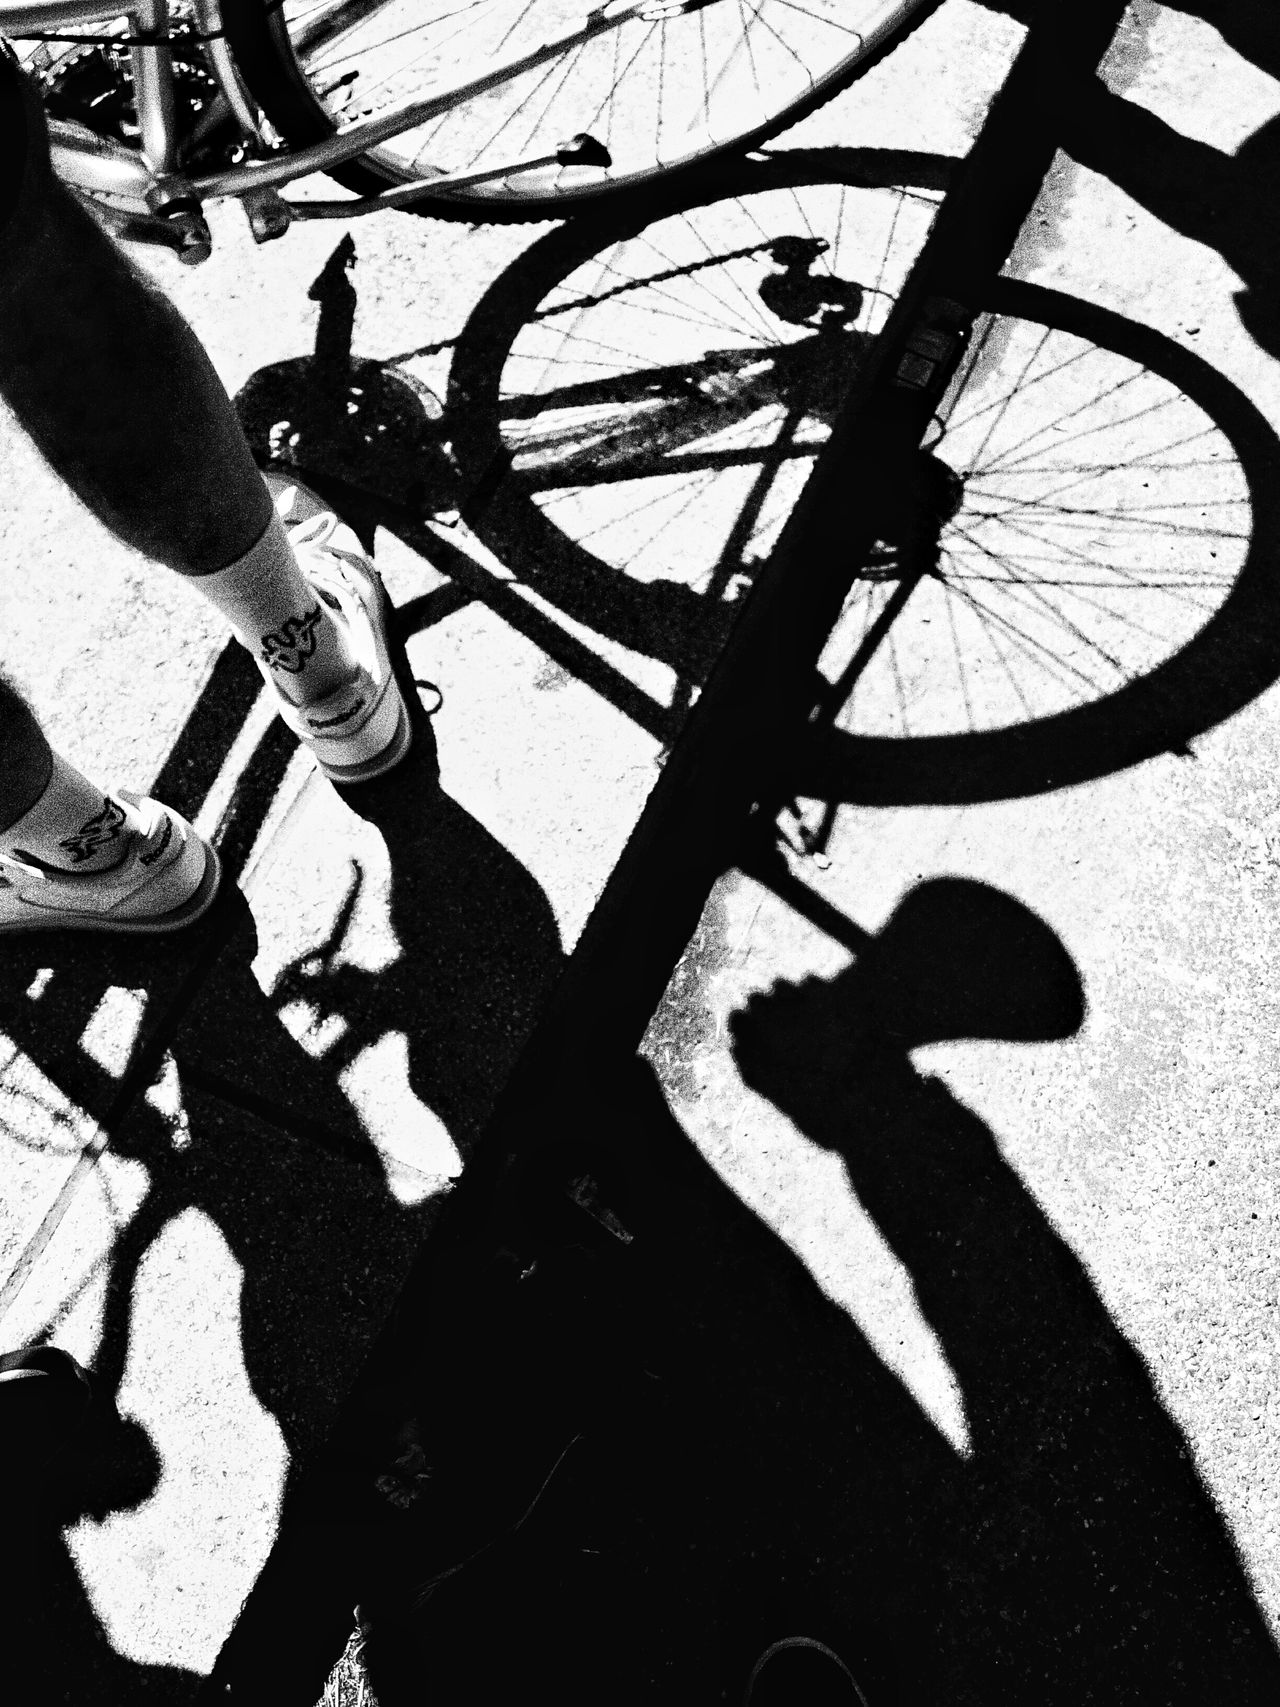 Giroditalia2016 Bike Blackandwhite Shadow